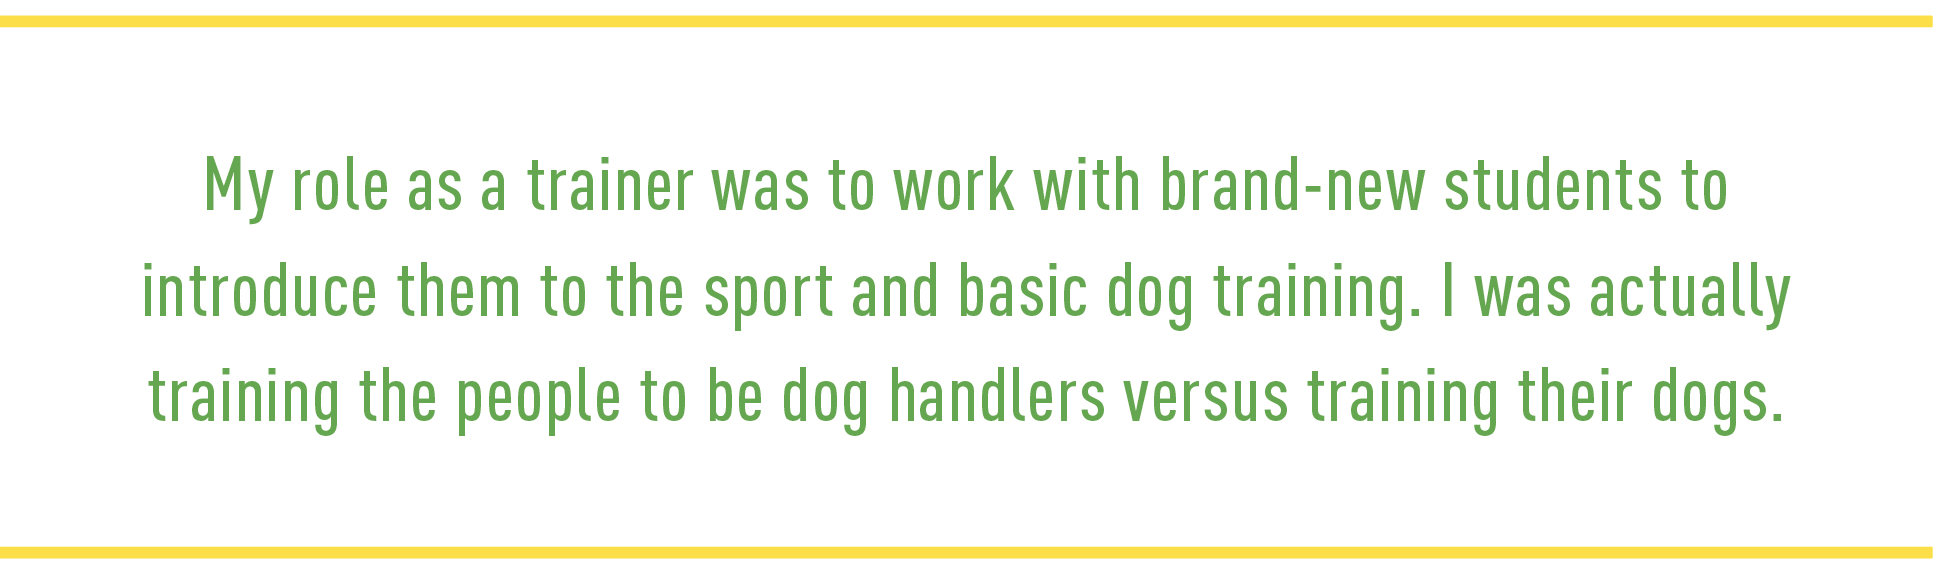 Quote: My role as a trainer was to work with brand-new students to introduce them to the sport and basic dog training. I was actually training the people to be dog handlers versus training their dogs.